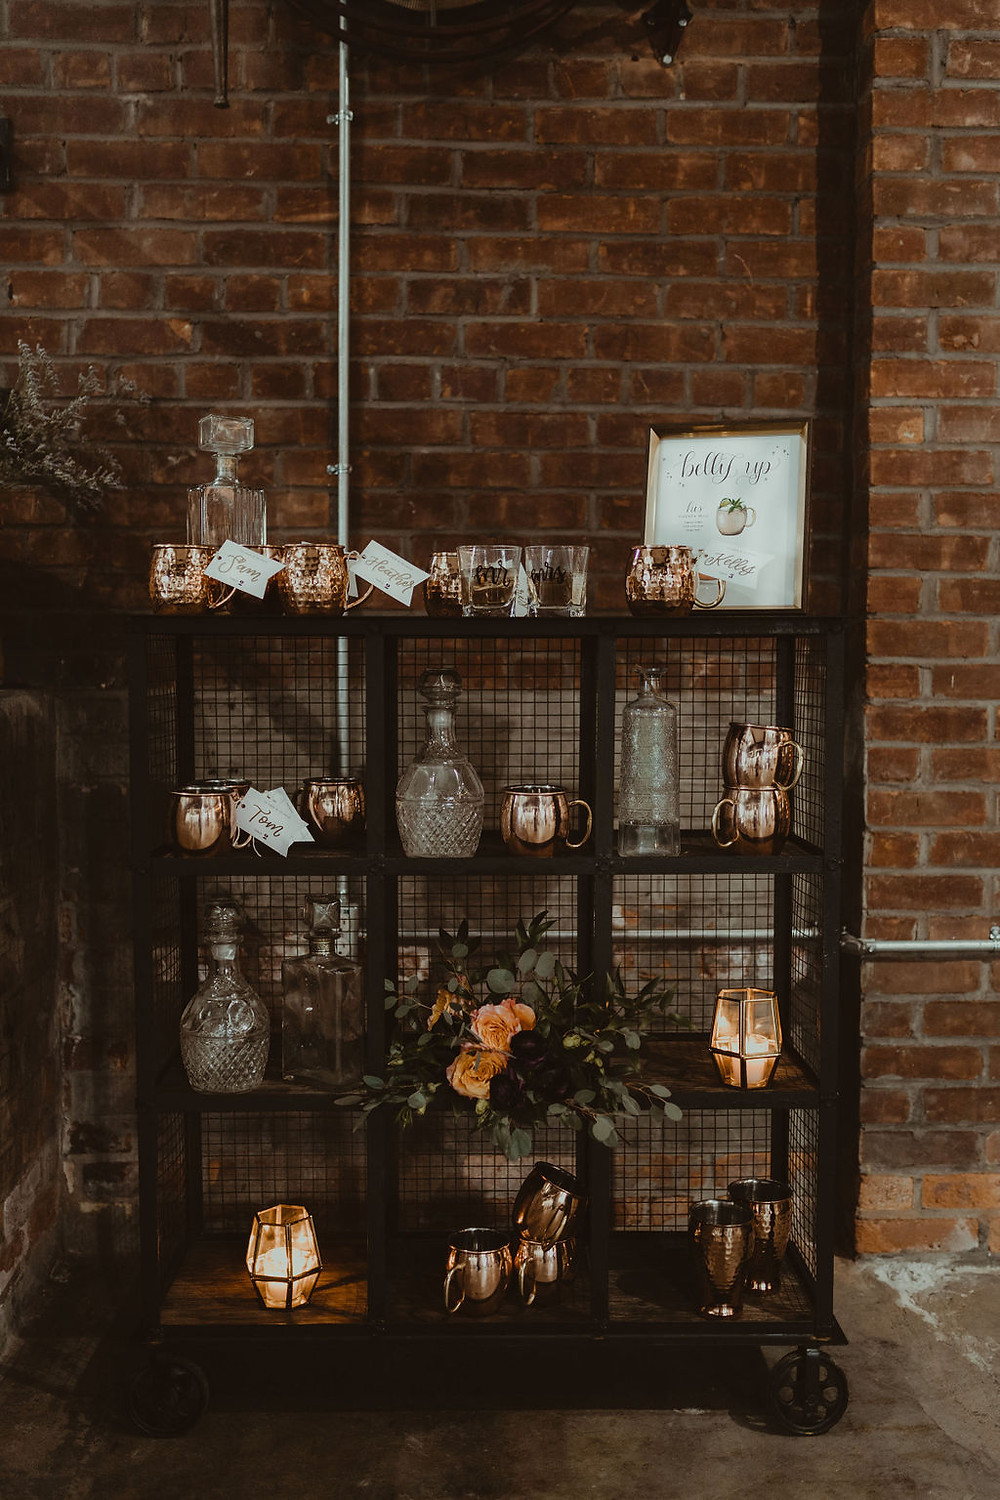 Mule Bar Wedding Display: Industrial & Copper Styled Wedding Shoot at Smith's Market featured on Pretty Little Vintage Co.